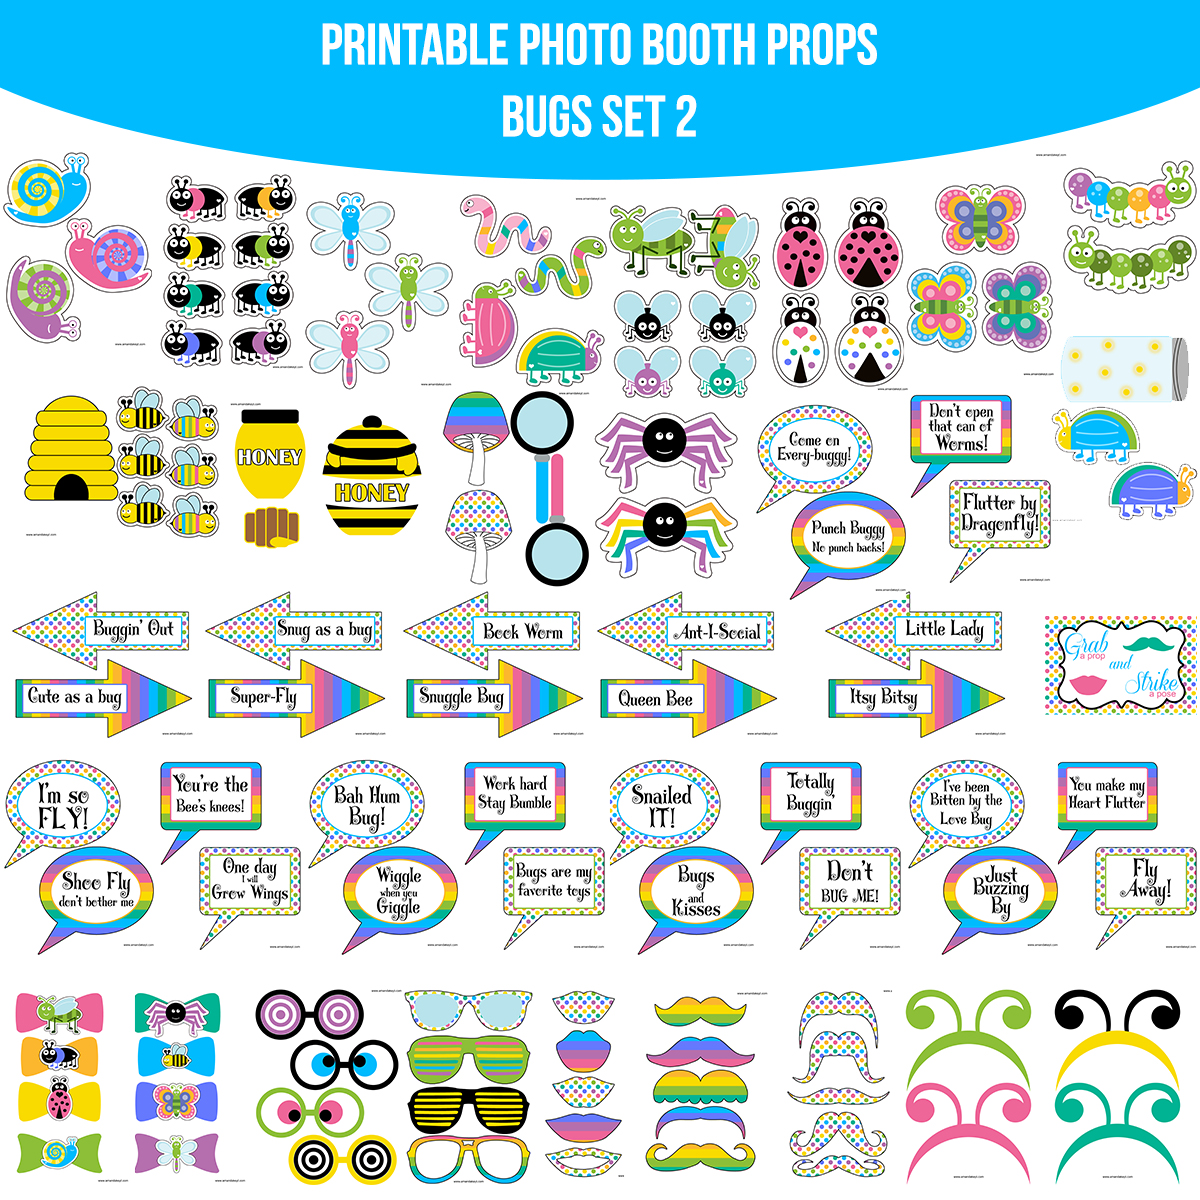 See the Set - To View The Whole Bugs Bug Printable Photo Booth Prop Set 2 Click Here